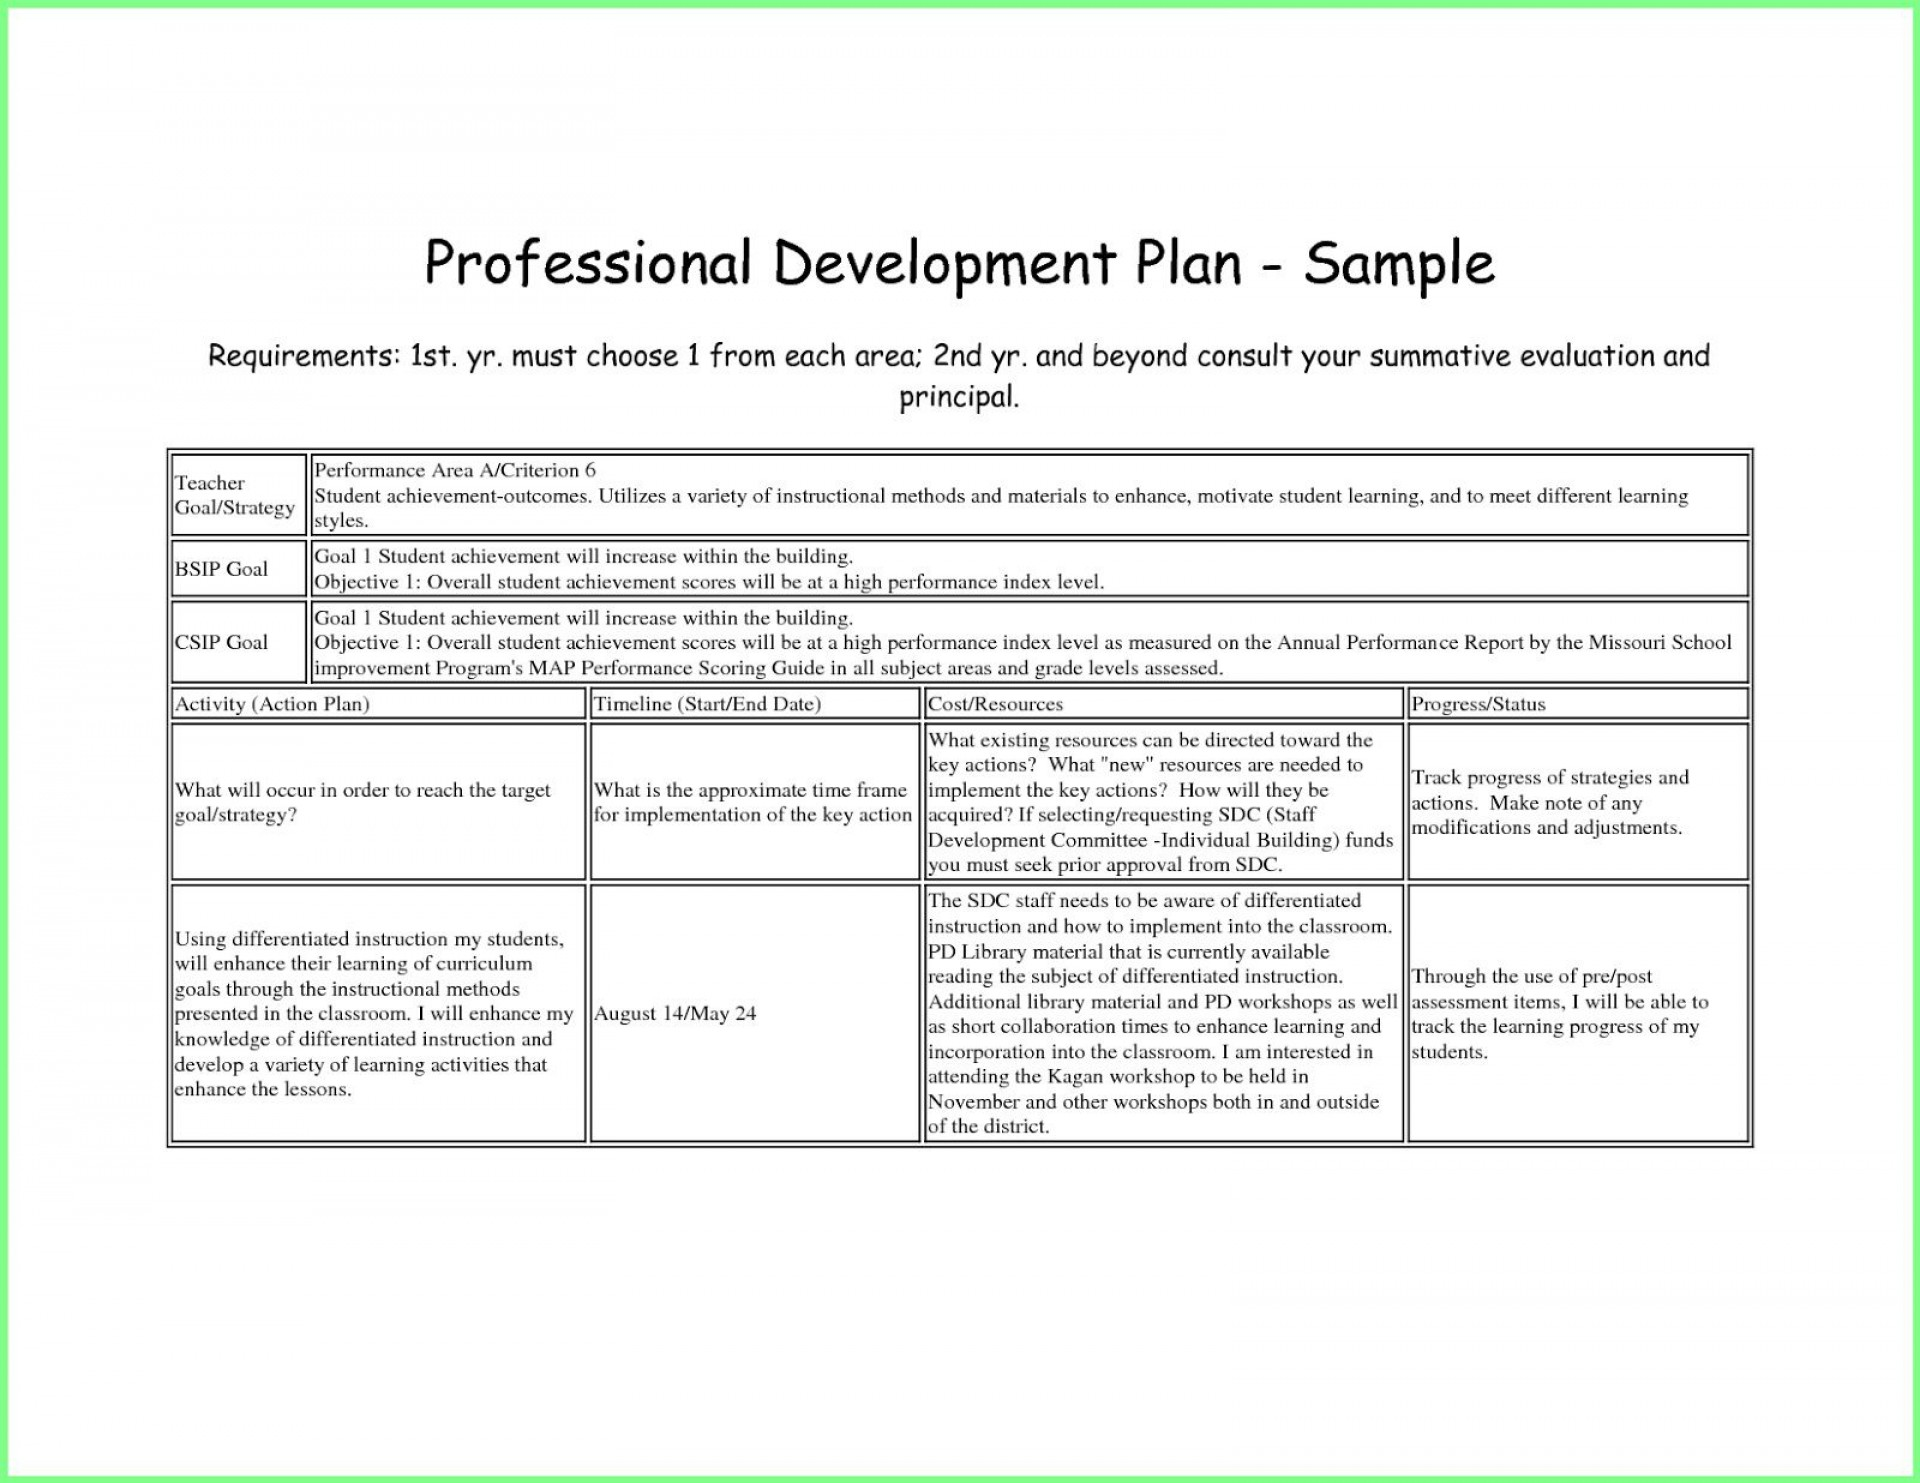 007 Fantastic Professional Development Plan Template Image  Example For Manager Excel1920